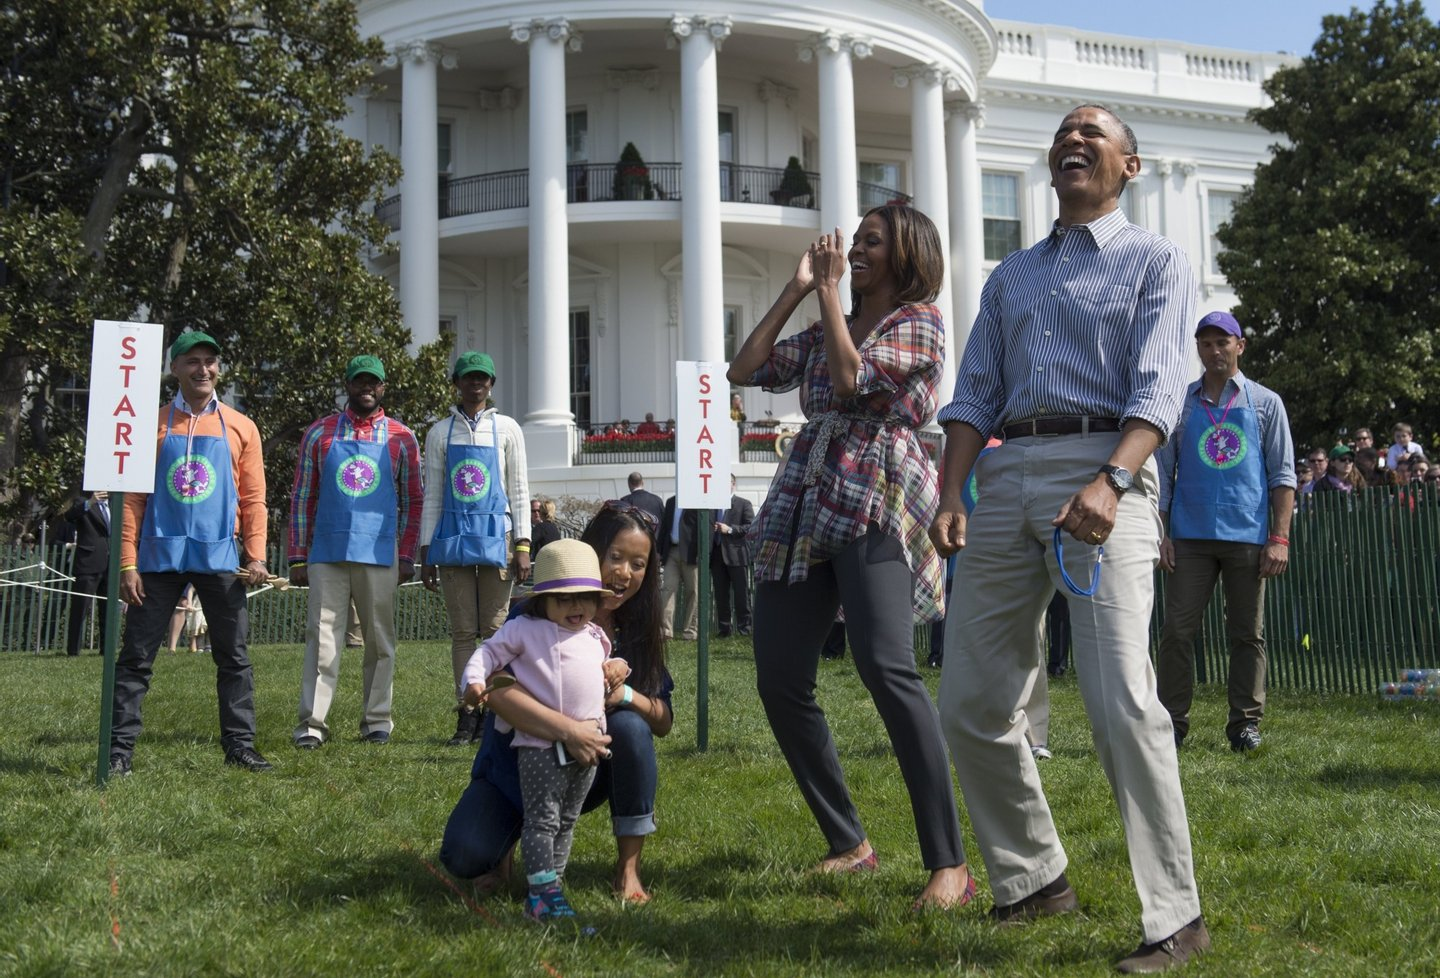 "US President Barack Obama and First Lady Michelle Obama react to a child rolling an Easter egg during the annual White House Easter Egg Roll on the South Lawn of the White House in Washington, DC, April 21, 2014. The 126th annual White House Easter Egg Roll, the largest annual public event at the White House with more than 30,000 attendees expected, features live music, sports courts, cooking stations, storytelling and Easter egg rolling, with the theme, ""Hop into Healthy, Swing into Shape."" AFP PHOTO / Saul LOEB (Photo credit should read SAUL LOEB/AFP/Getty Images)"